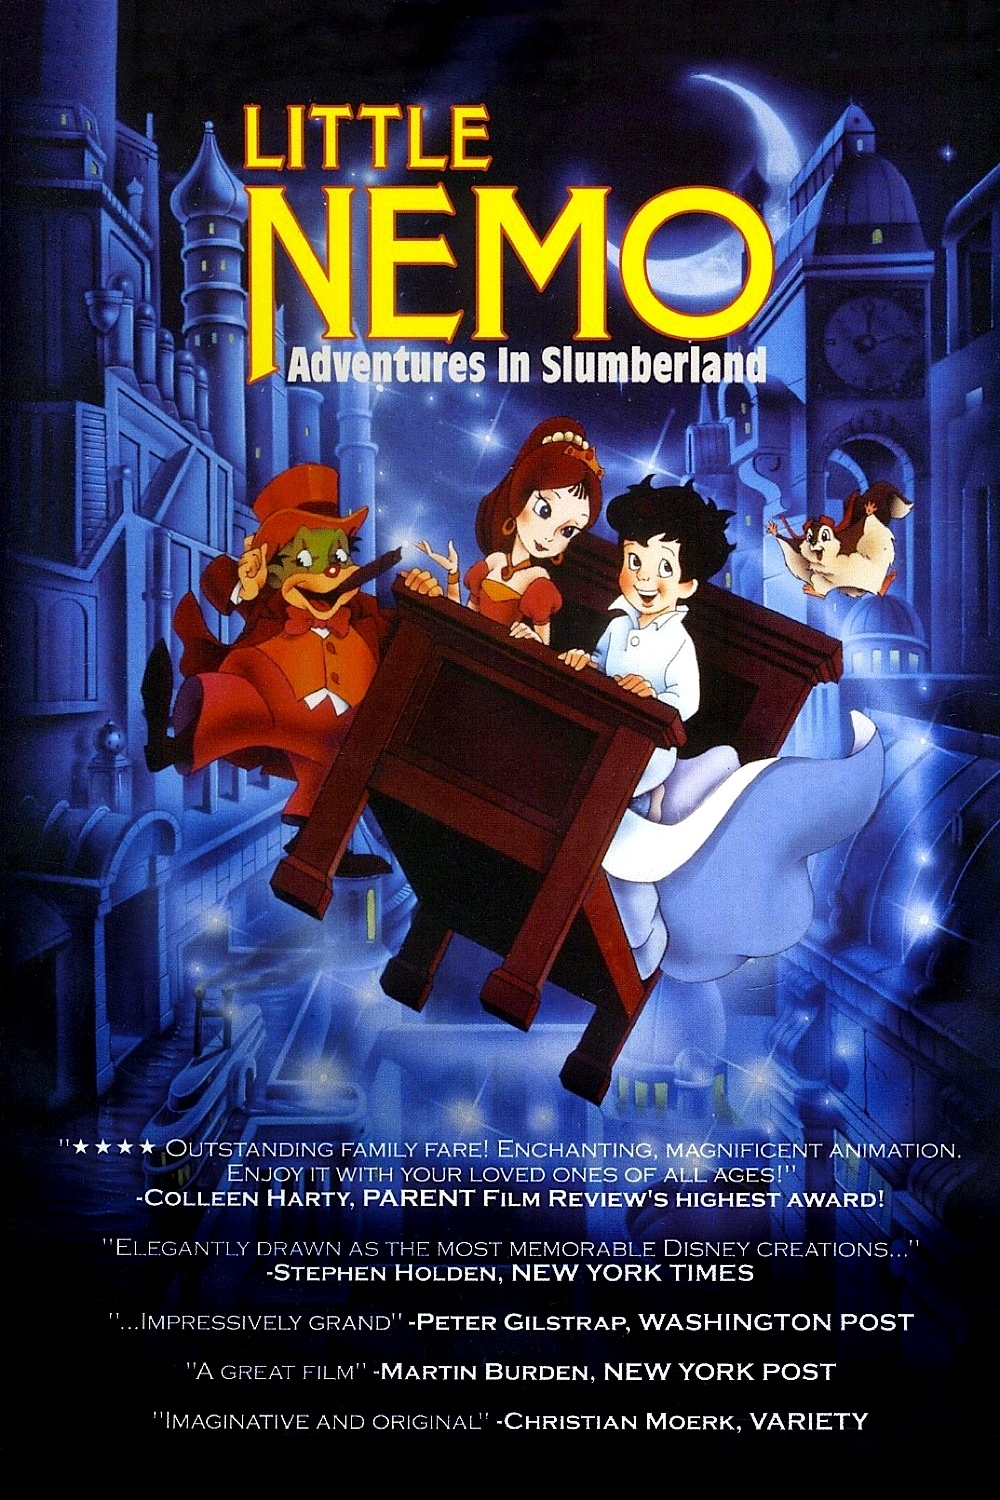 Little movie nemo